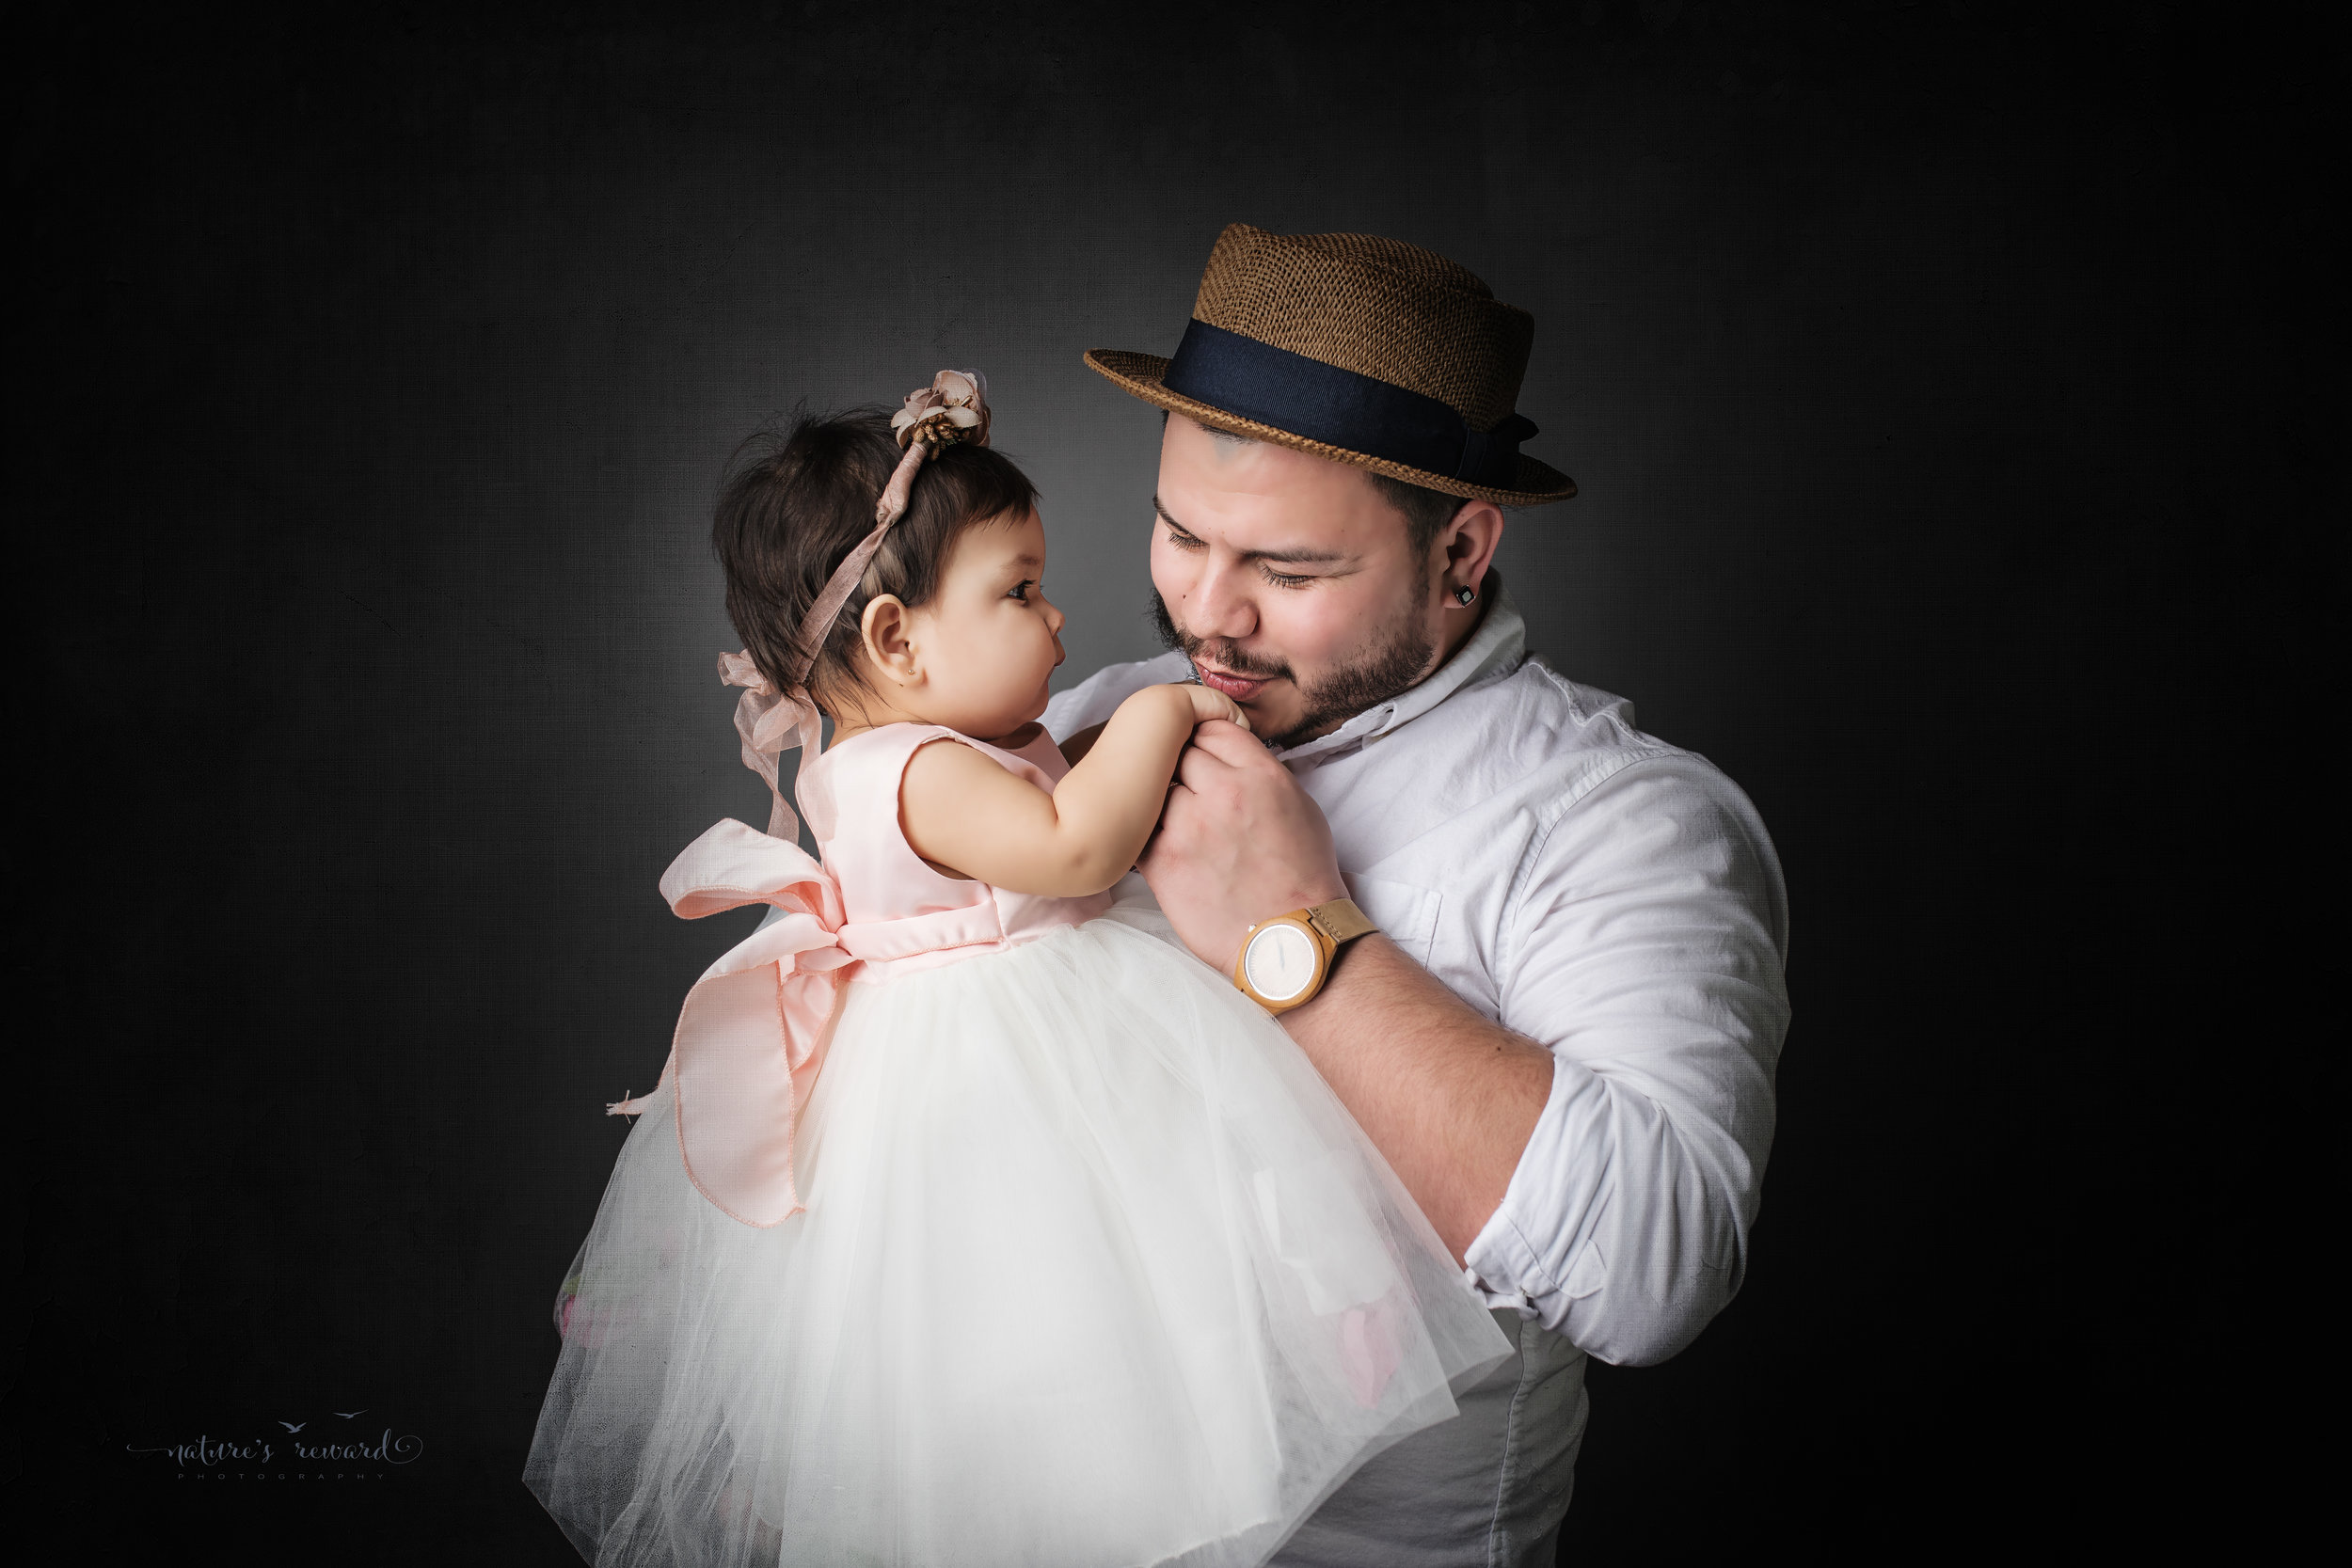 Father and daughter dressed in white on a grey background, a portrait by Nature's Reward Photography